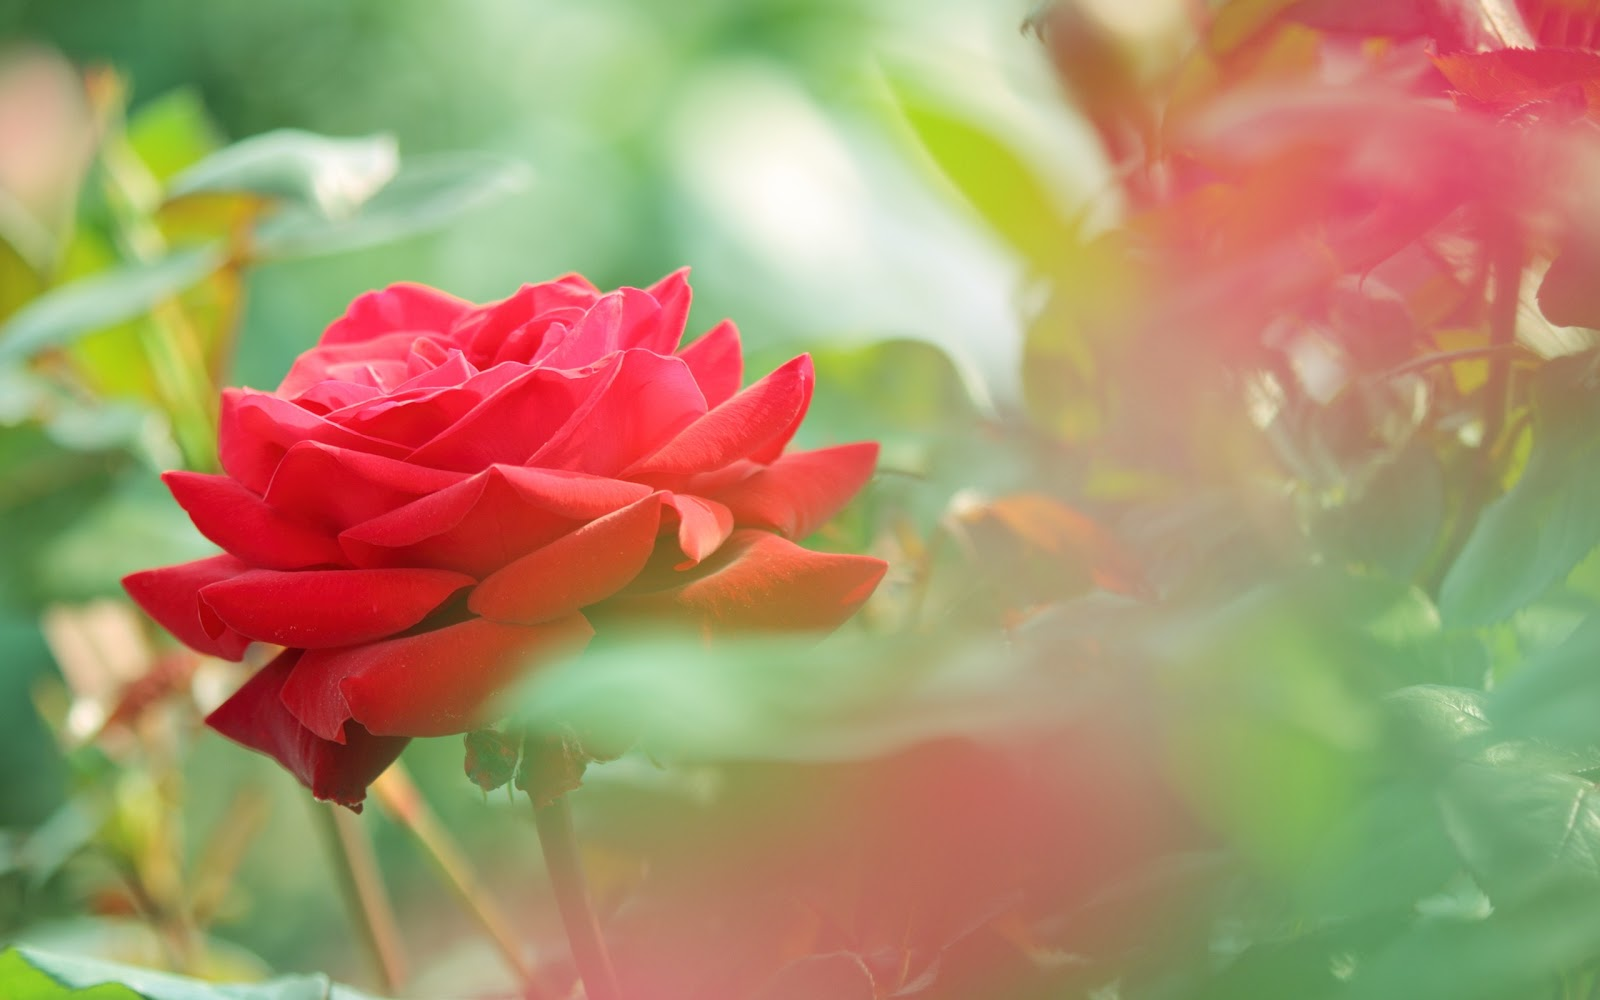 Images of hd romantic flower wallpapers spacehero beautiful red rose flower hd wallpaper love wallpapers izmirmasajfo